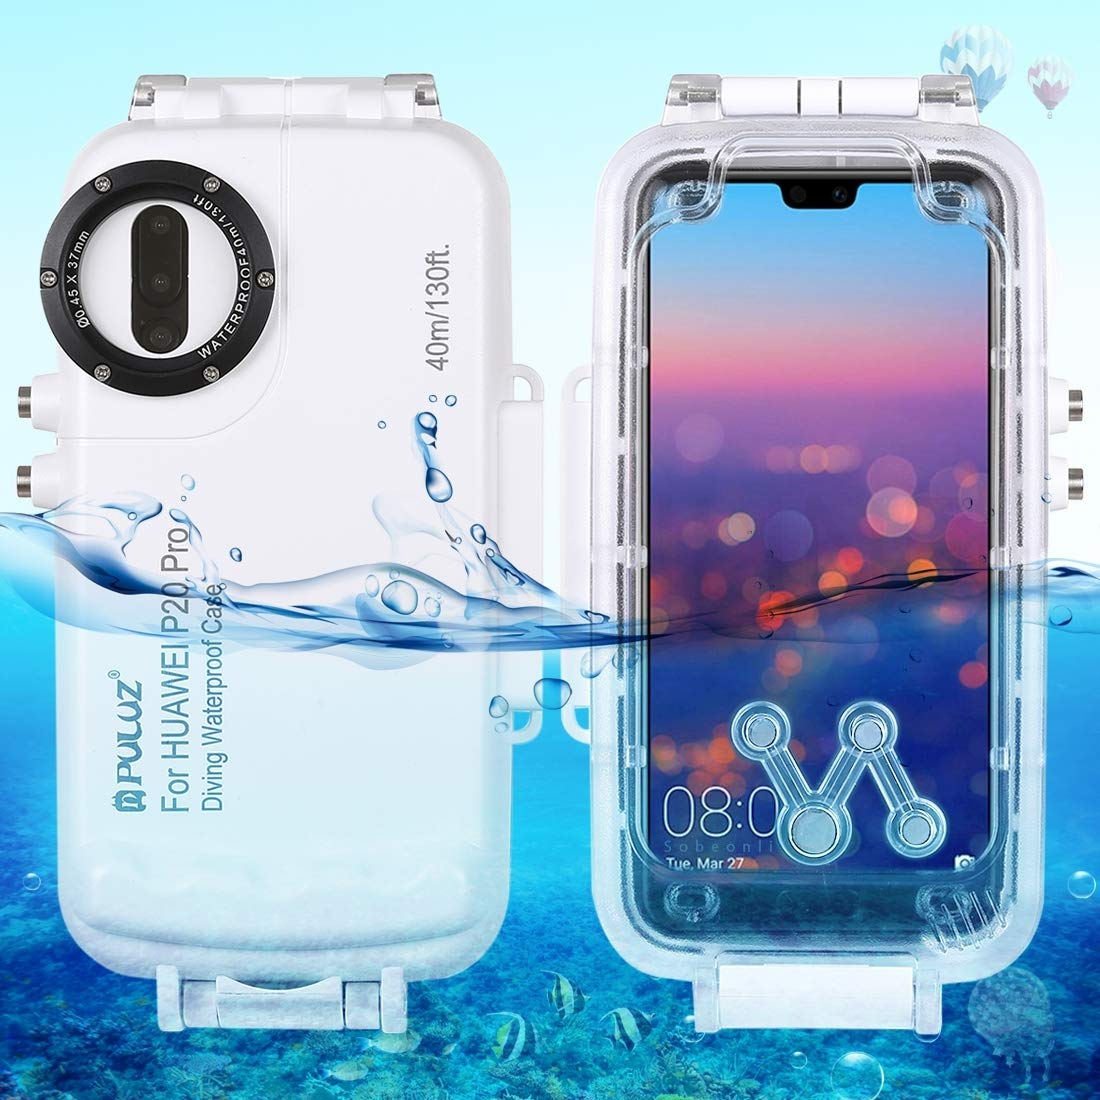 Naozbuyrig Huawei P20 Pro Dry Bag Case, PULUZ 40m/130ft Waterproof Diving Housing Photo Video Taking Underwater Cover Case for Huawei P20 Pro (Color : White)